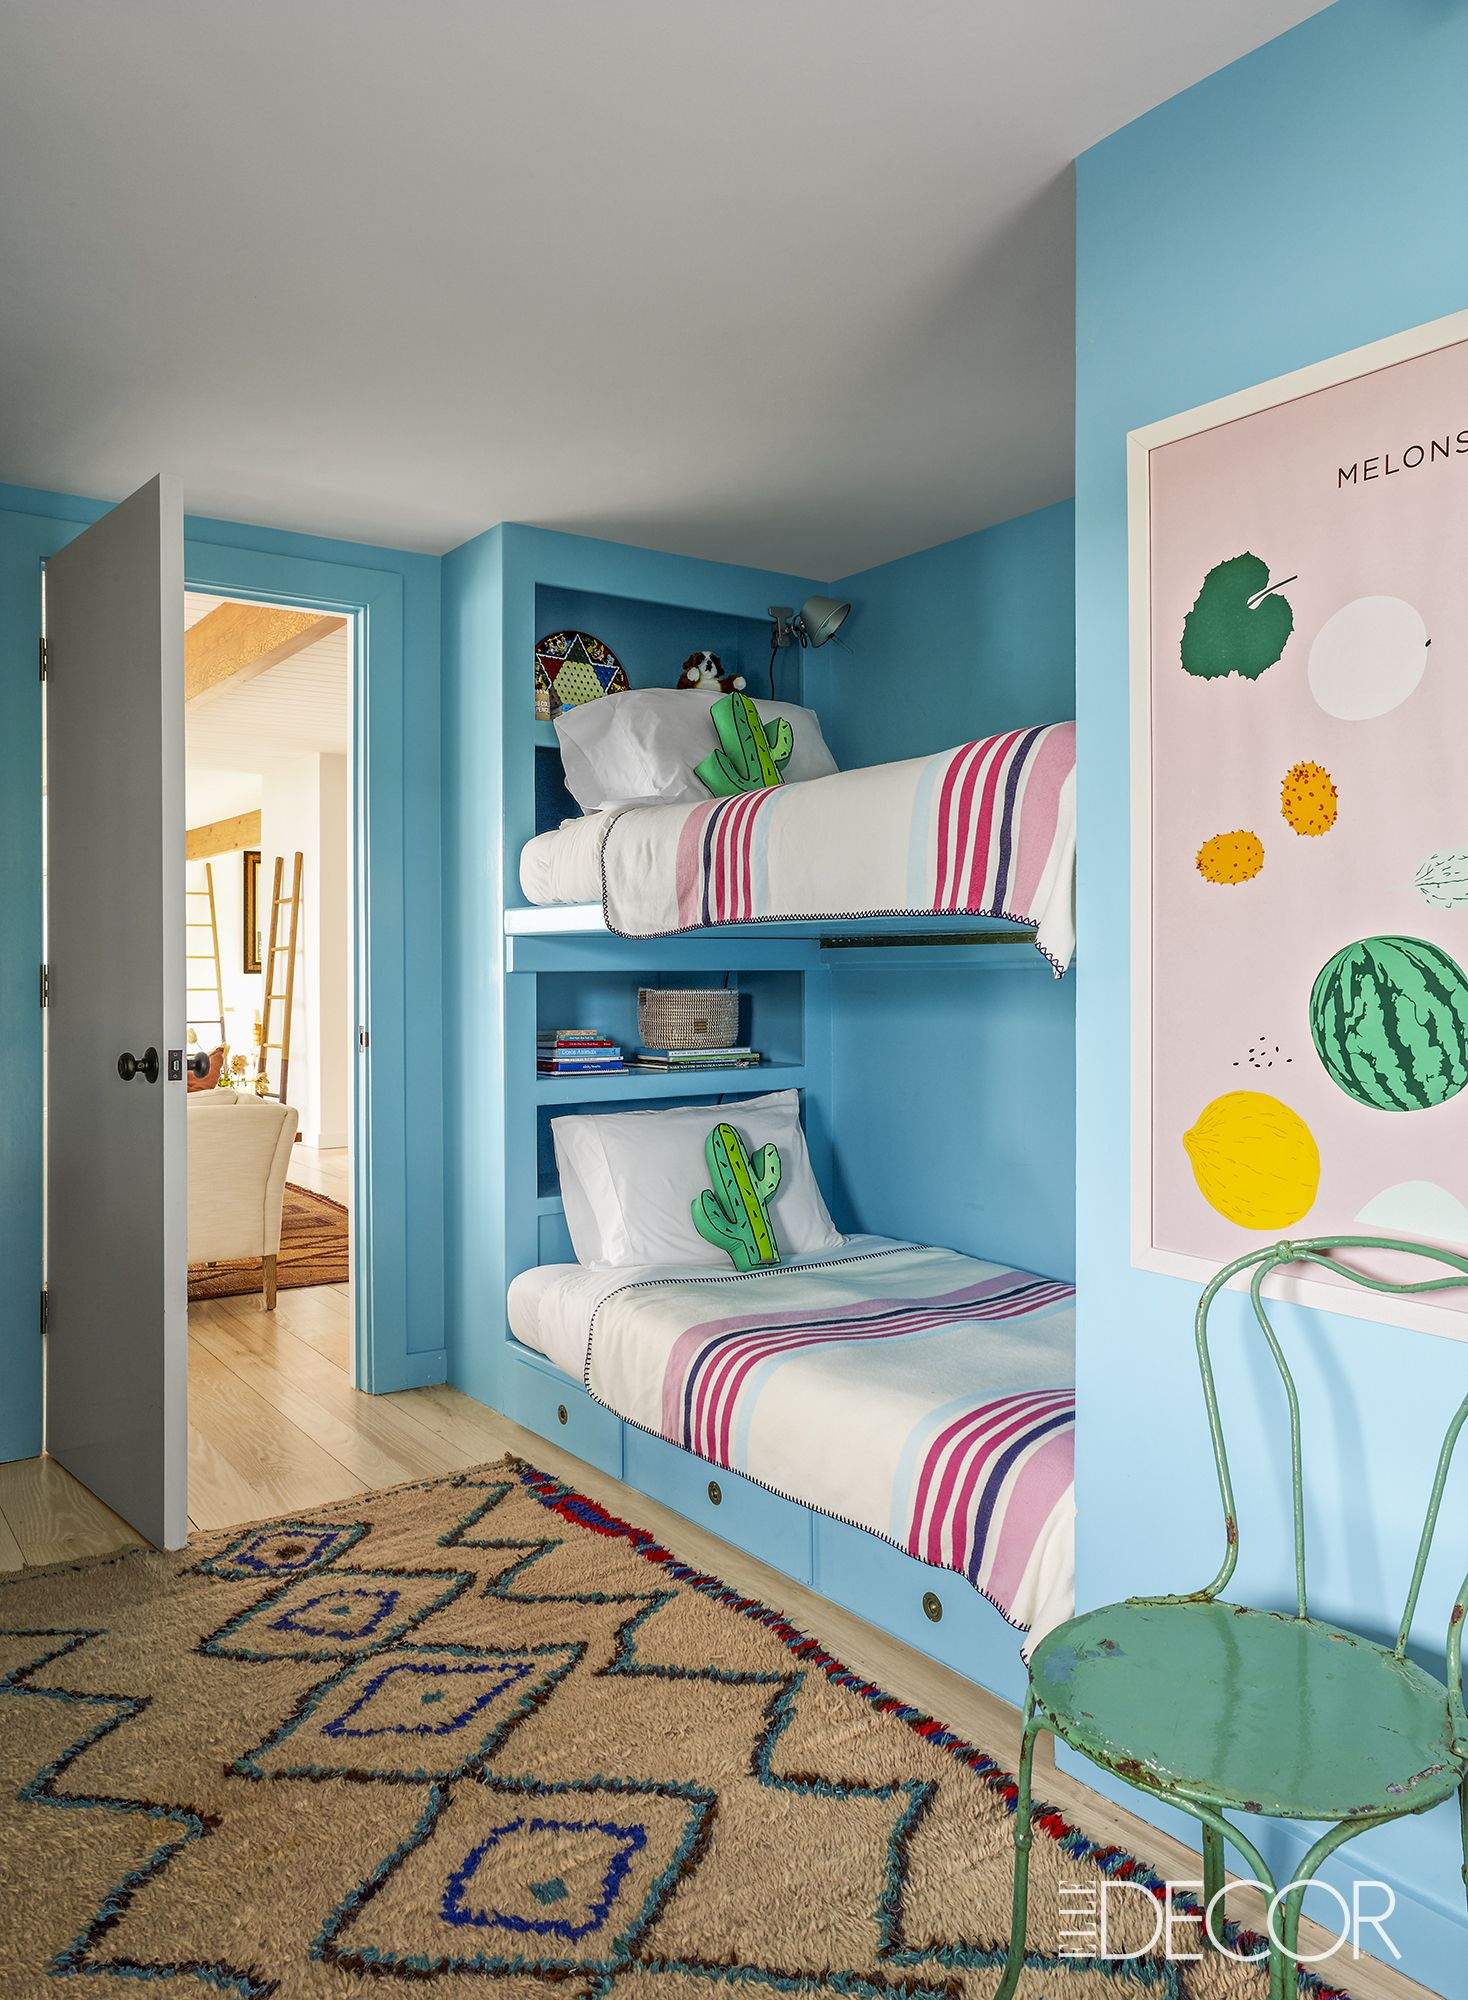 18 cool kids room decorating ideas kids room decor rh elledecor com decorating kids room inspired by new york decorating kids room